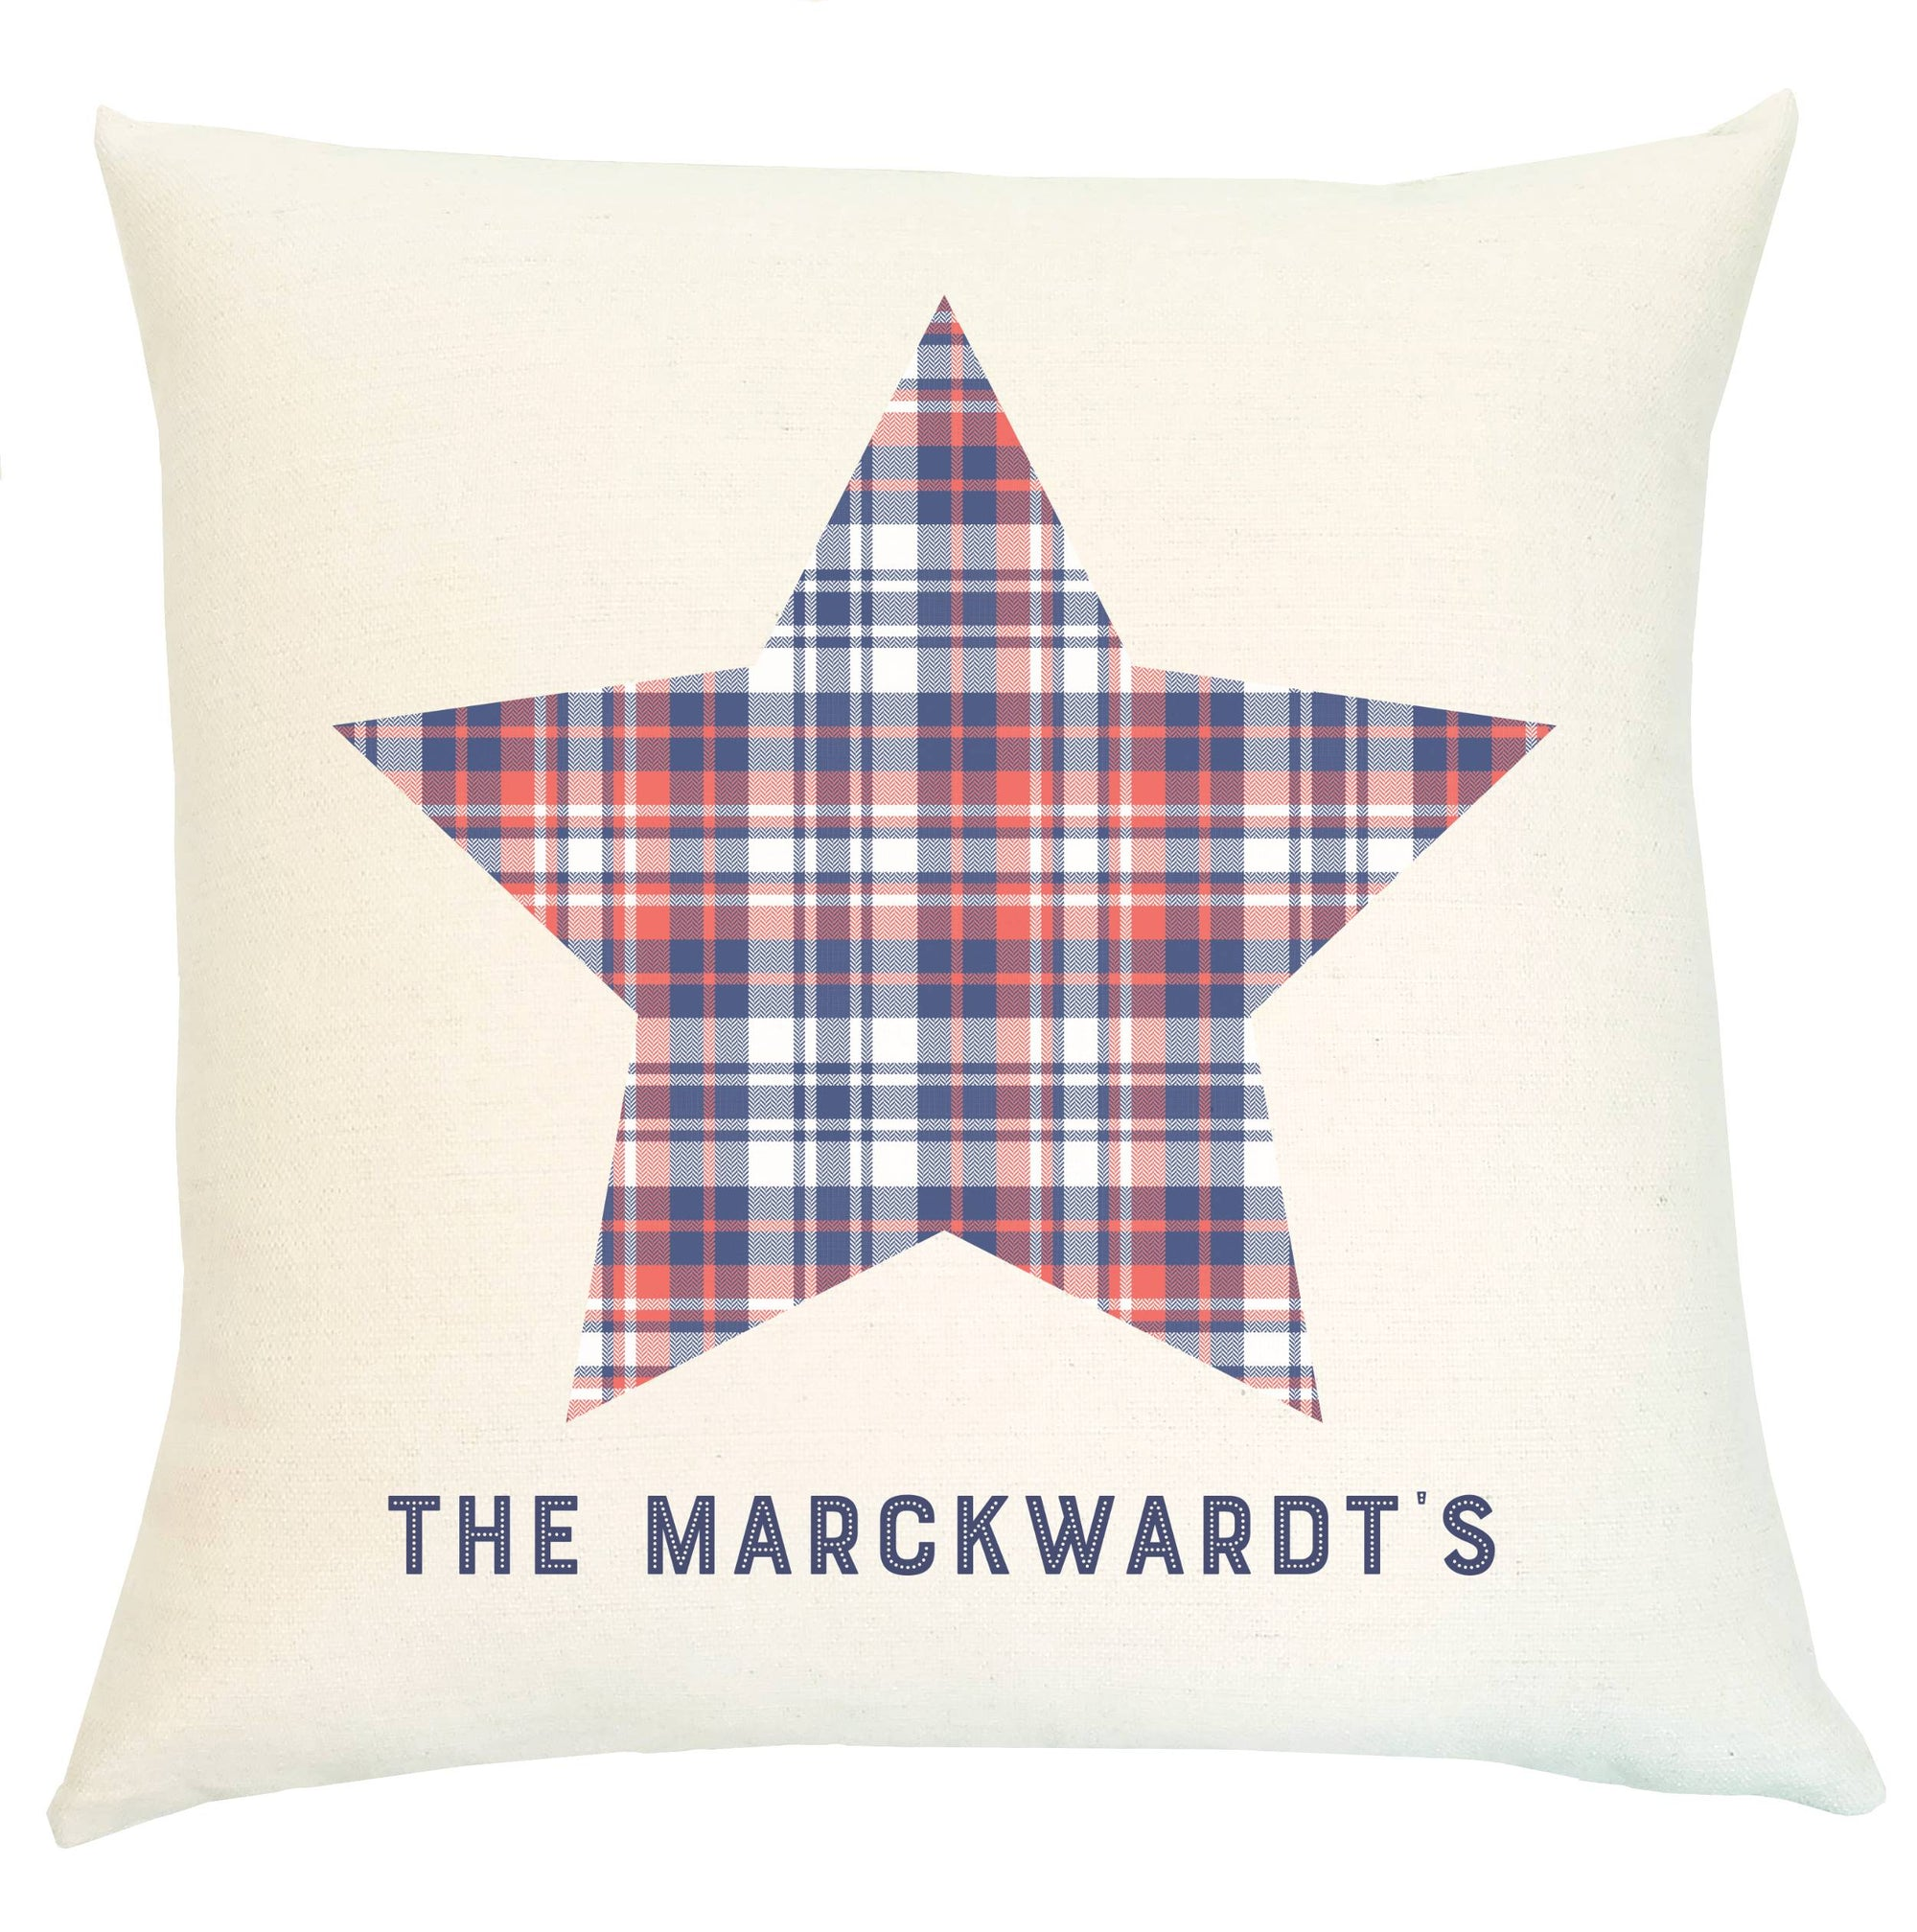 Pillow Personalized - Everyday Heroes with Plaid Star